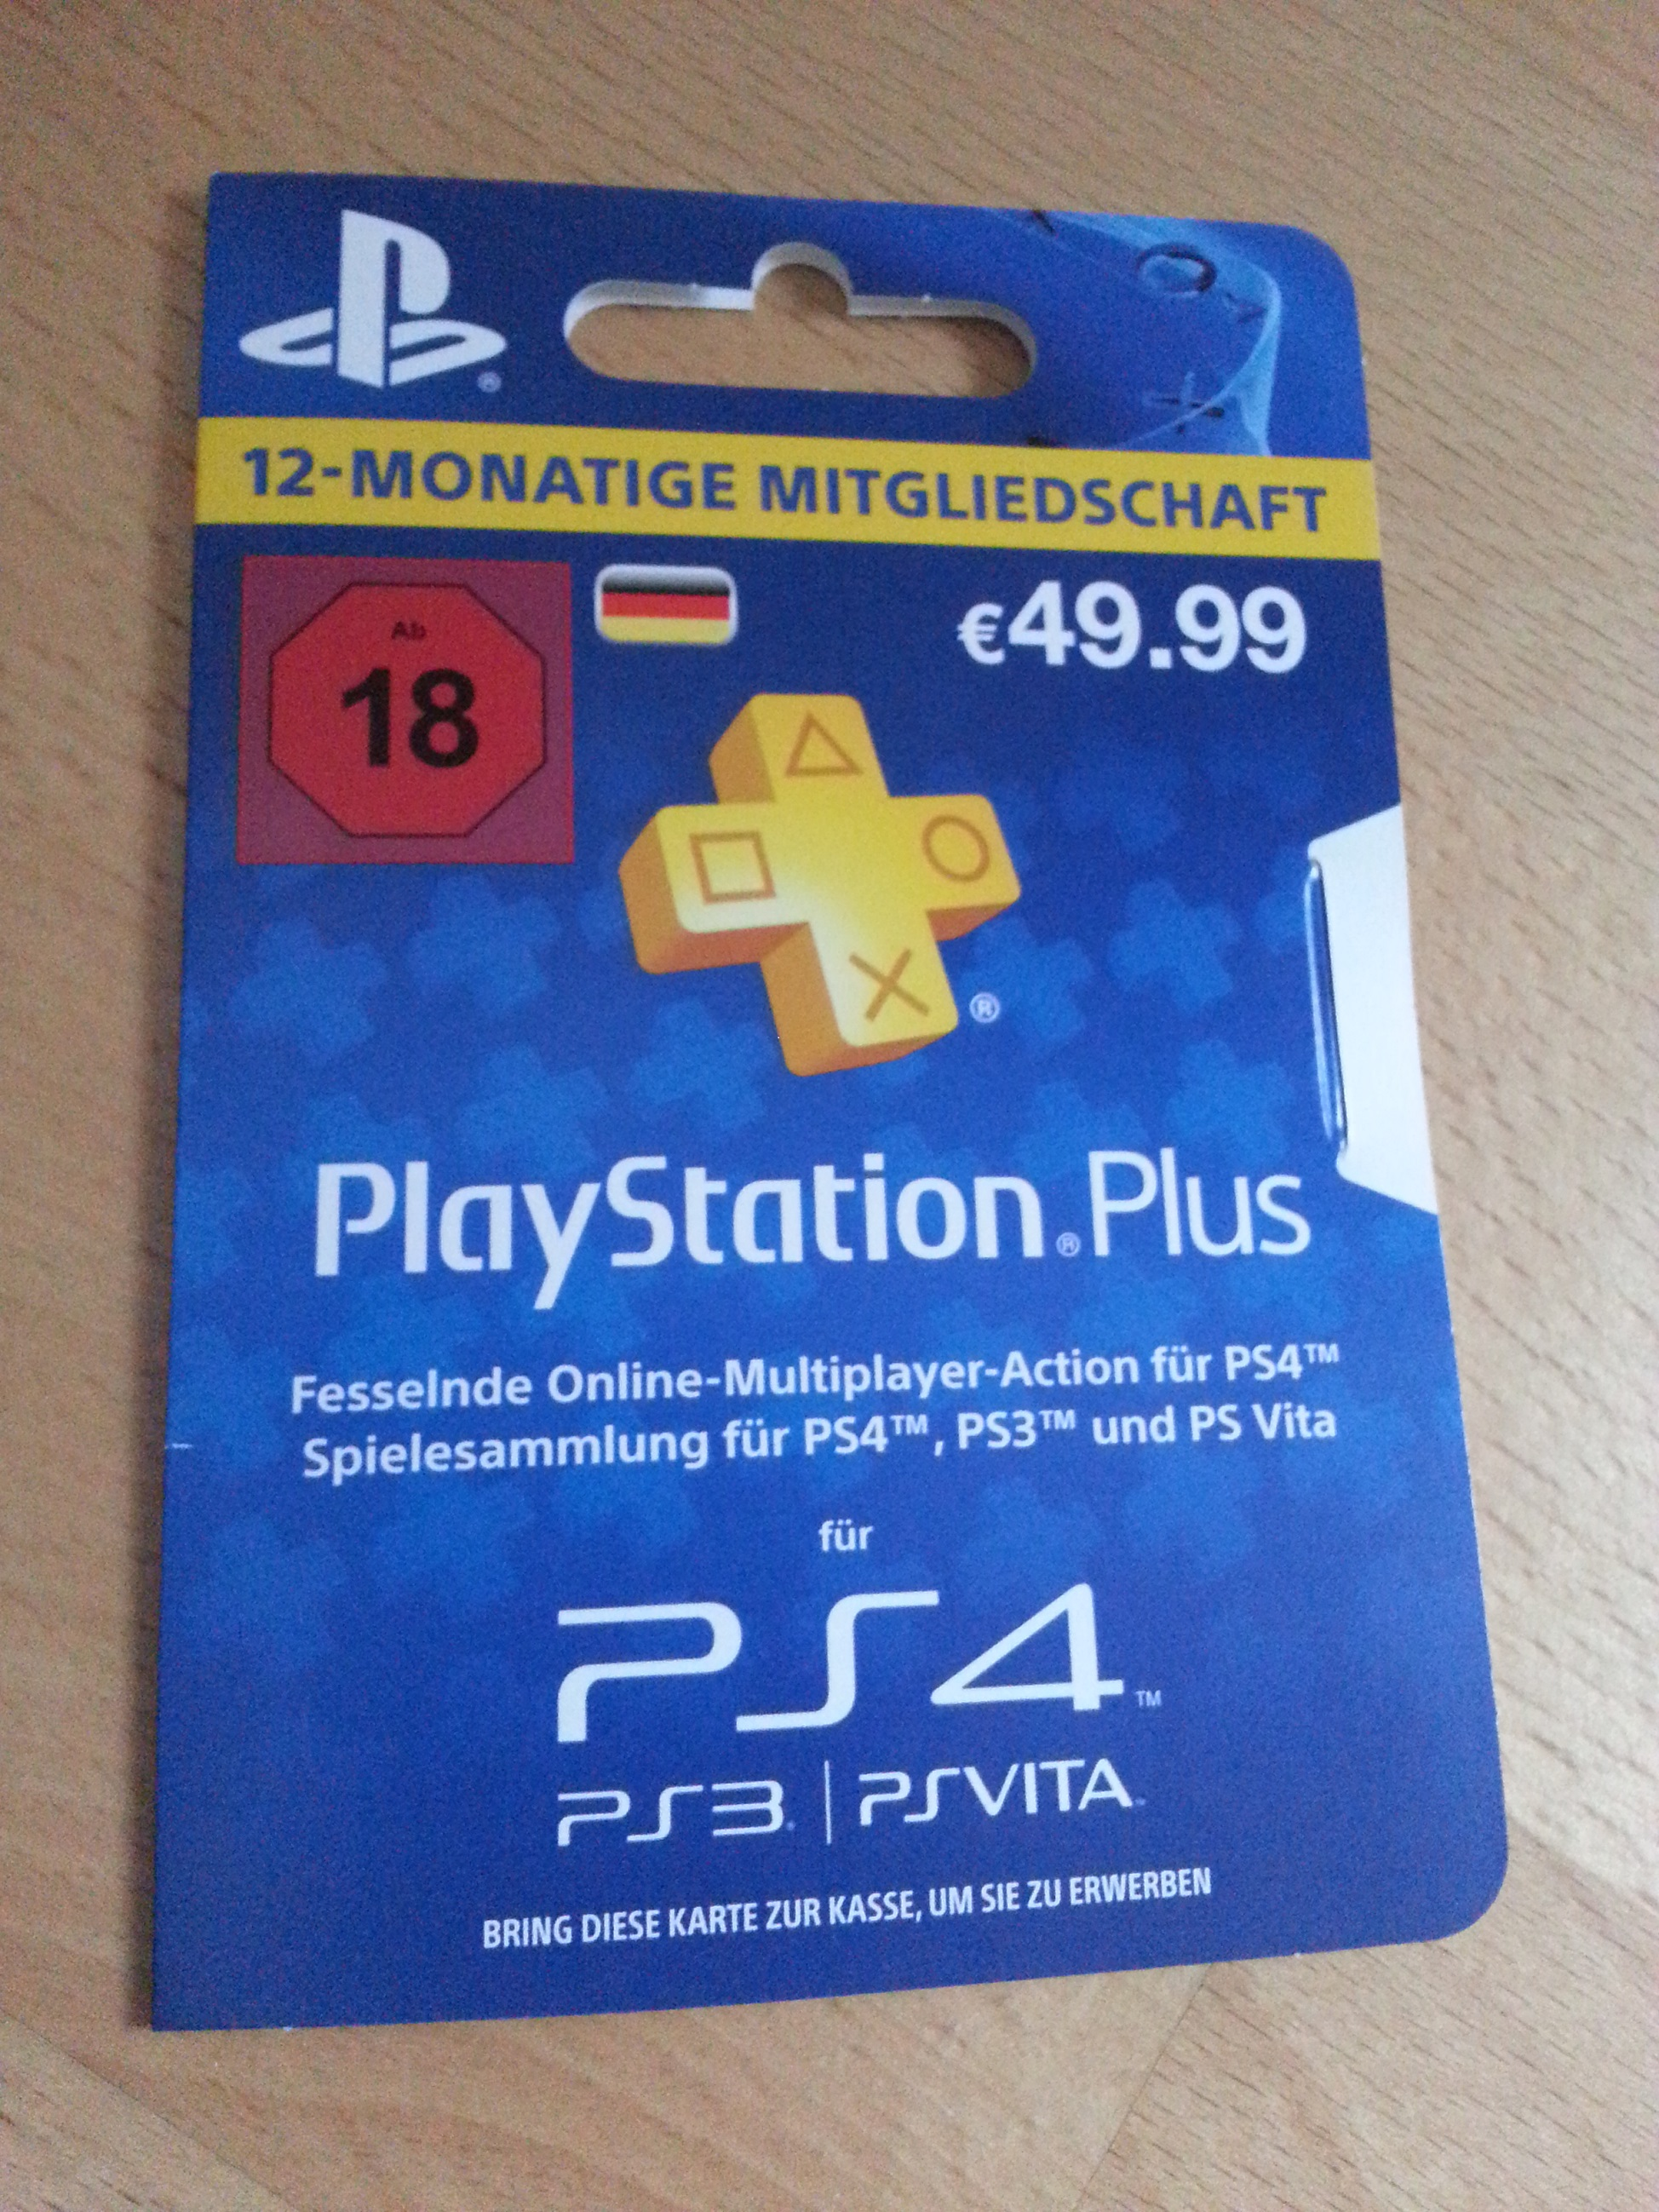 Ps Plus Karte.Playstation Plus Karte Kaufen Karte